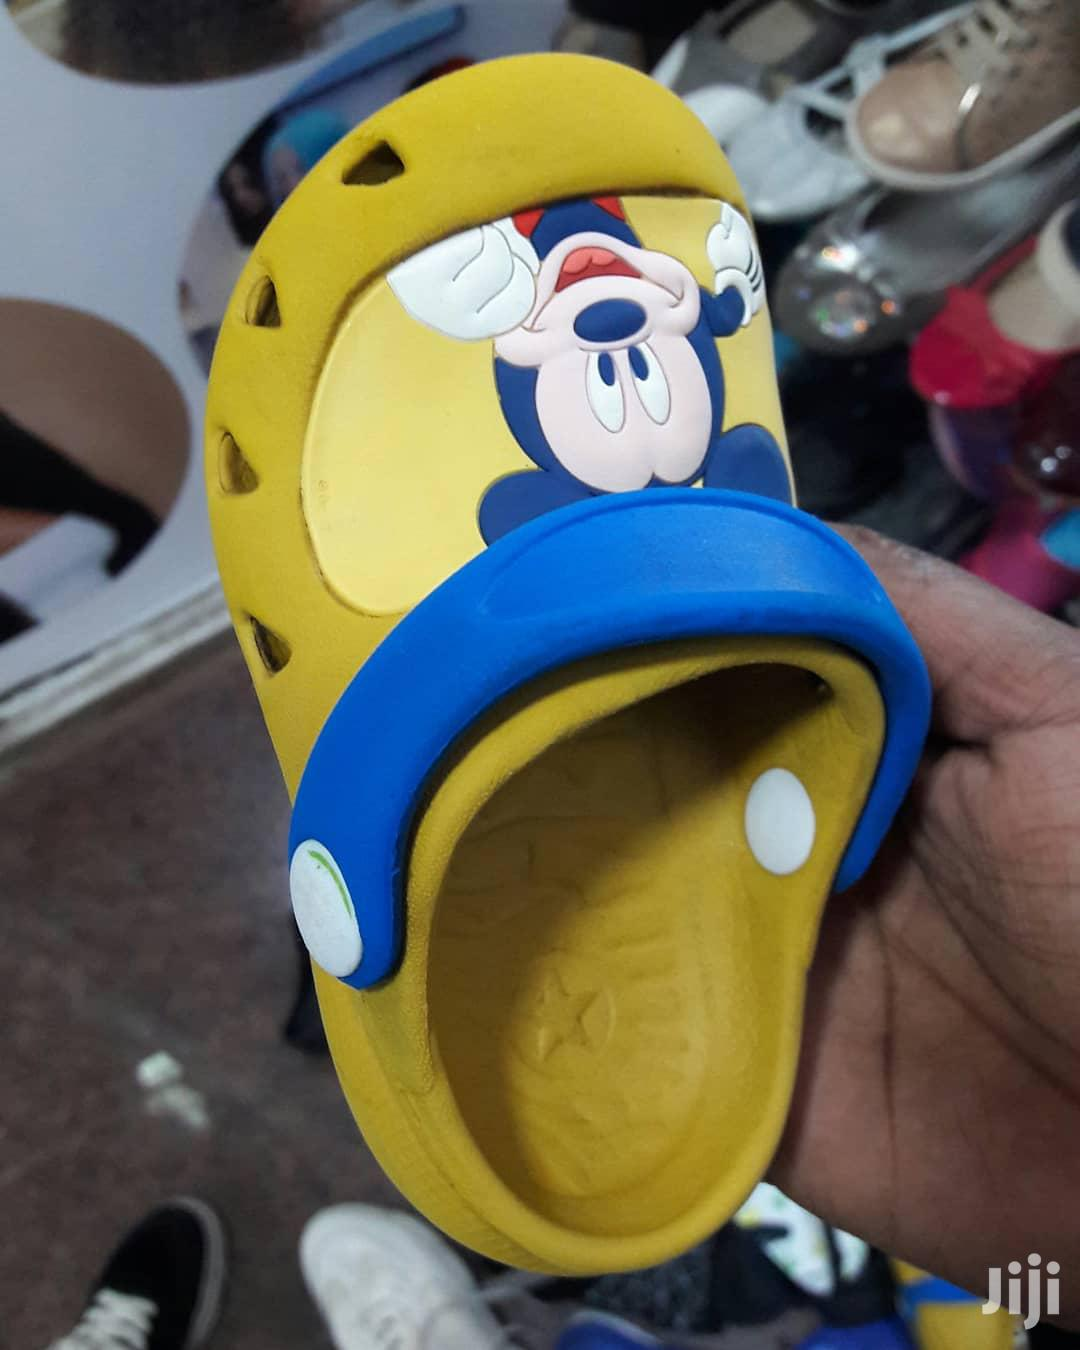 Children's Shoes Available | Children's Shoes for sale in Kampala, Uganda